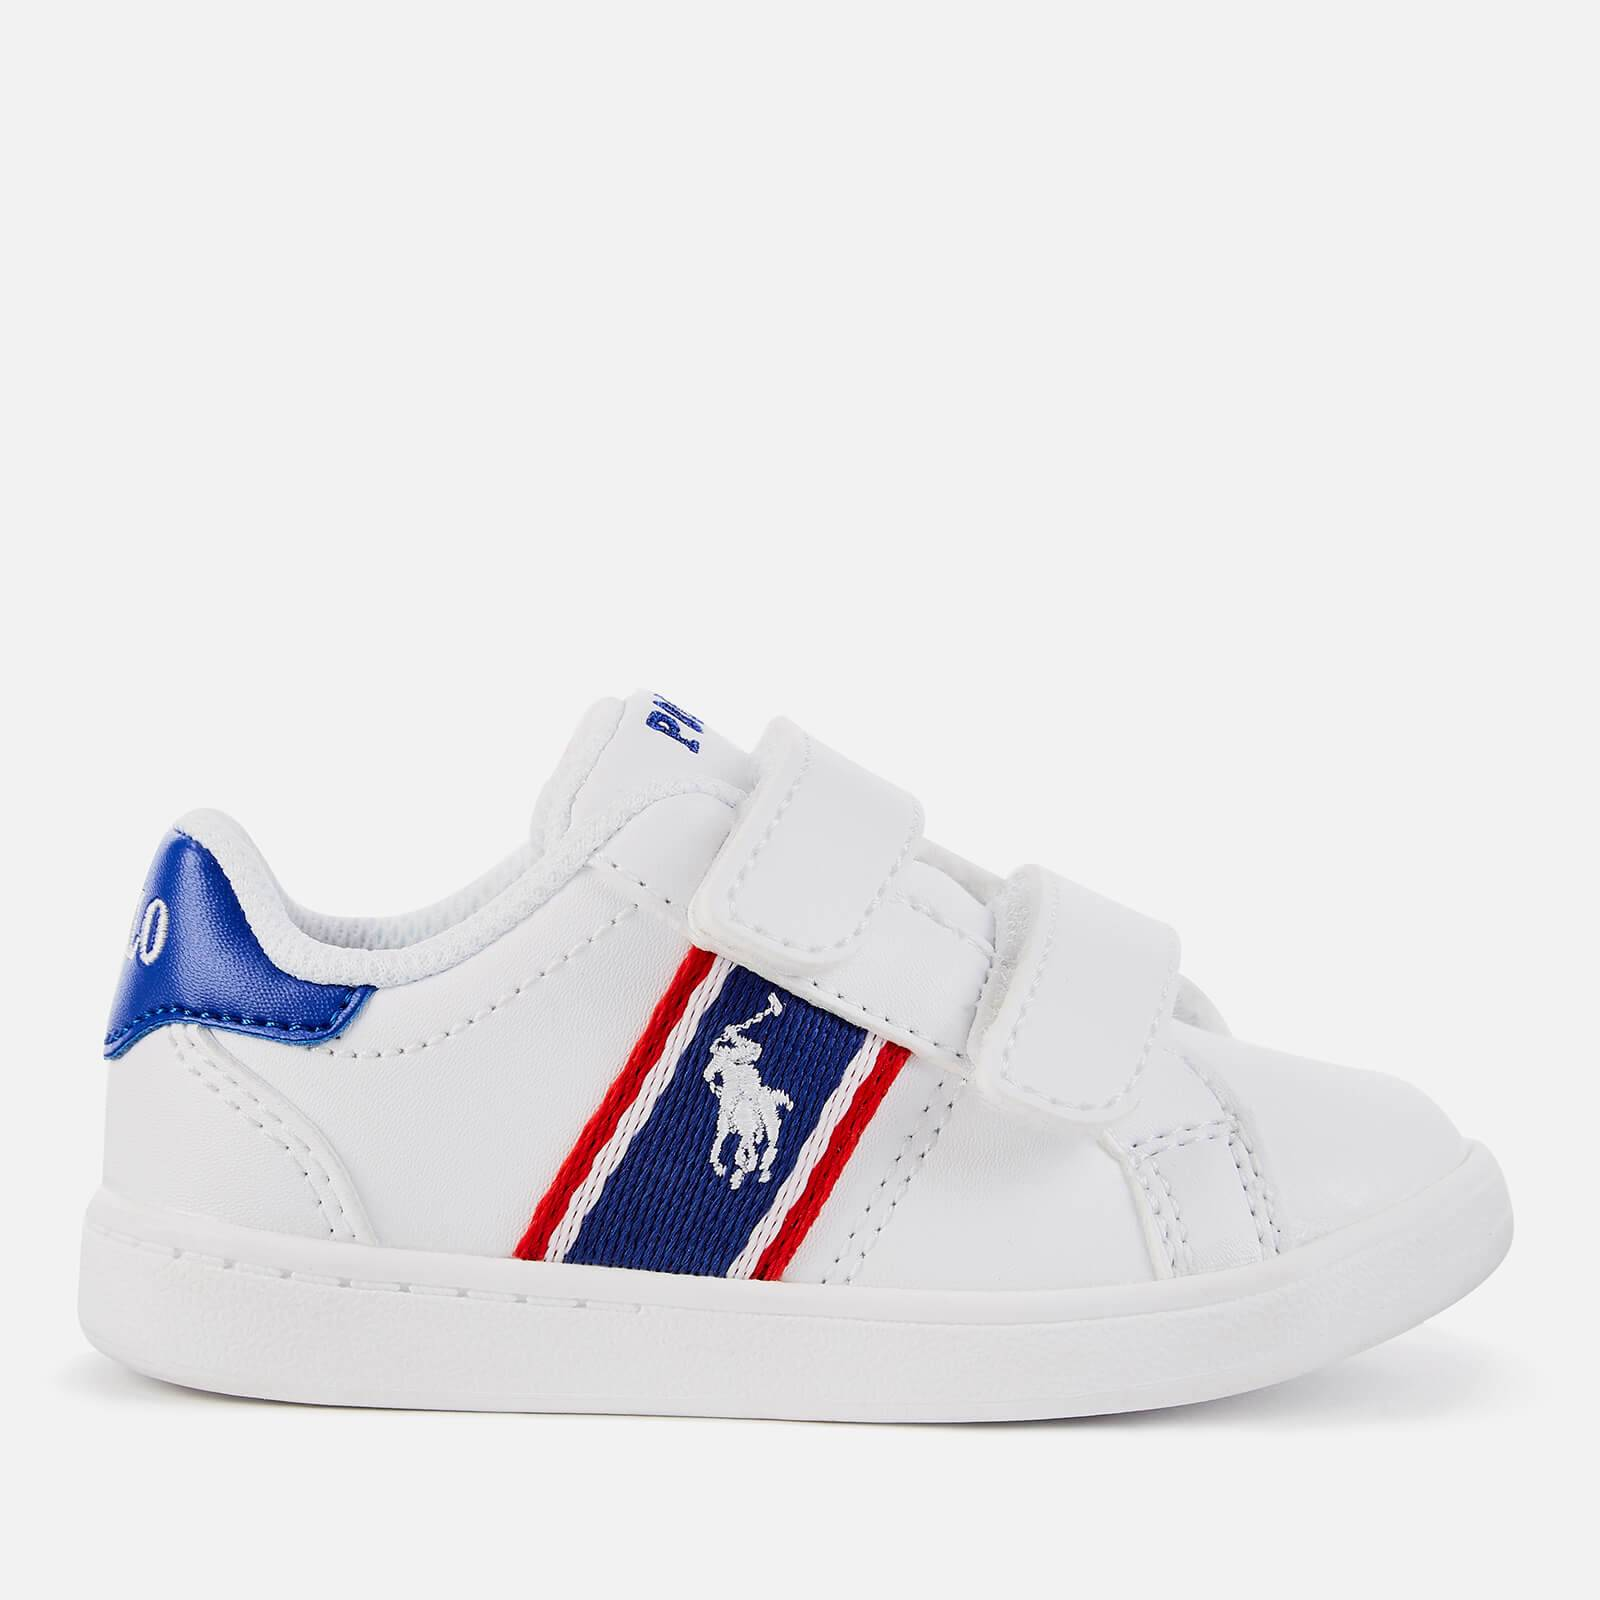 Ralph Lauren Polo Ralph Lauren Toddlers' Quigley Ez Velcro Trainers - White/Royal Red/White PP - UK 8 Toddler/EU 25 - White